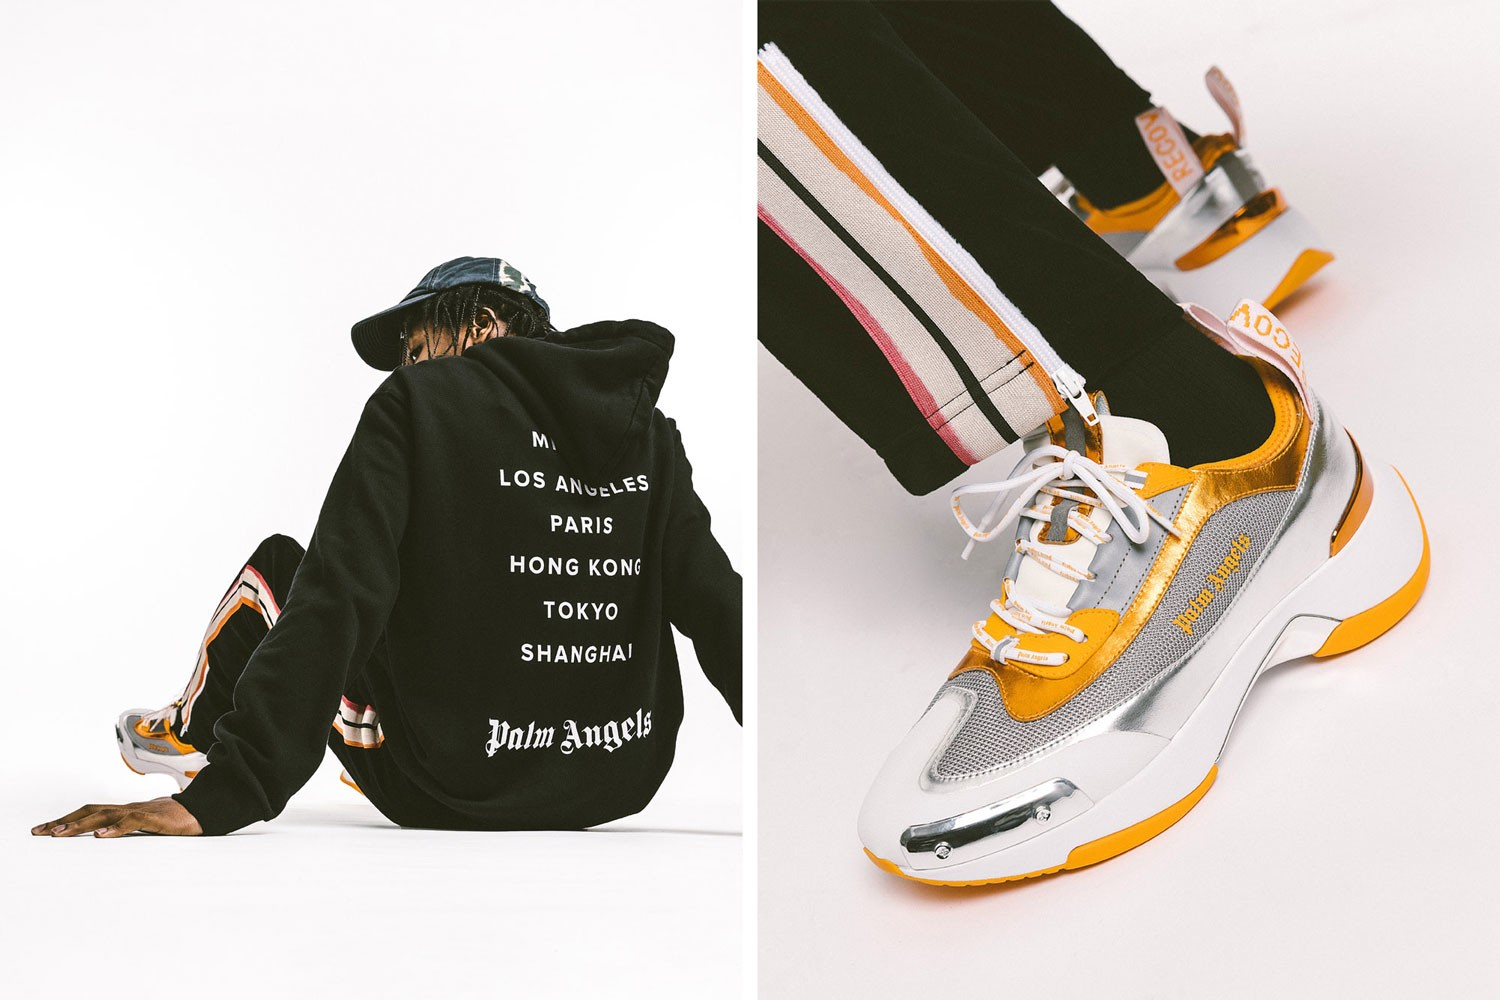 Palm Angels Spring Summer 2020 Collection